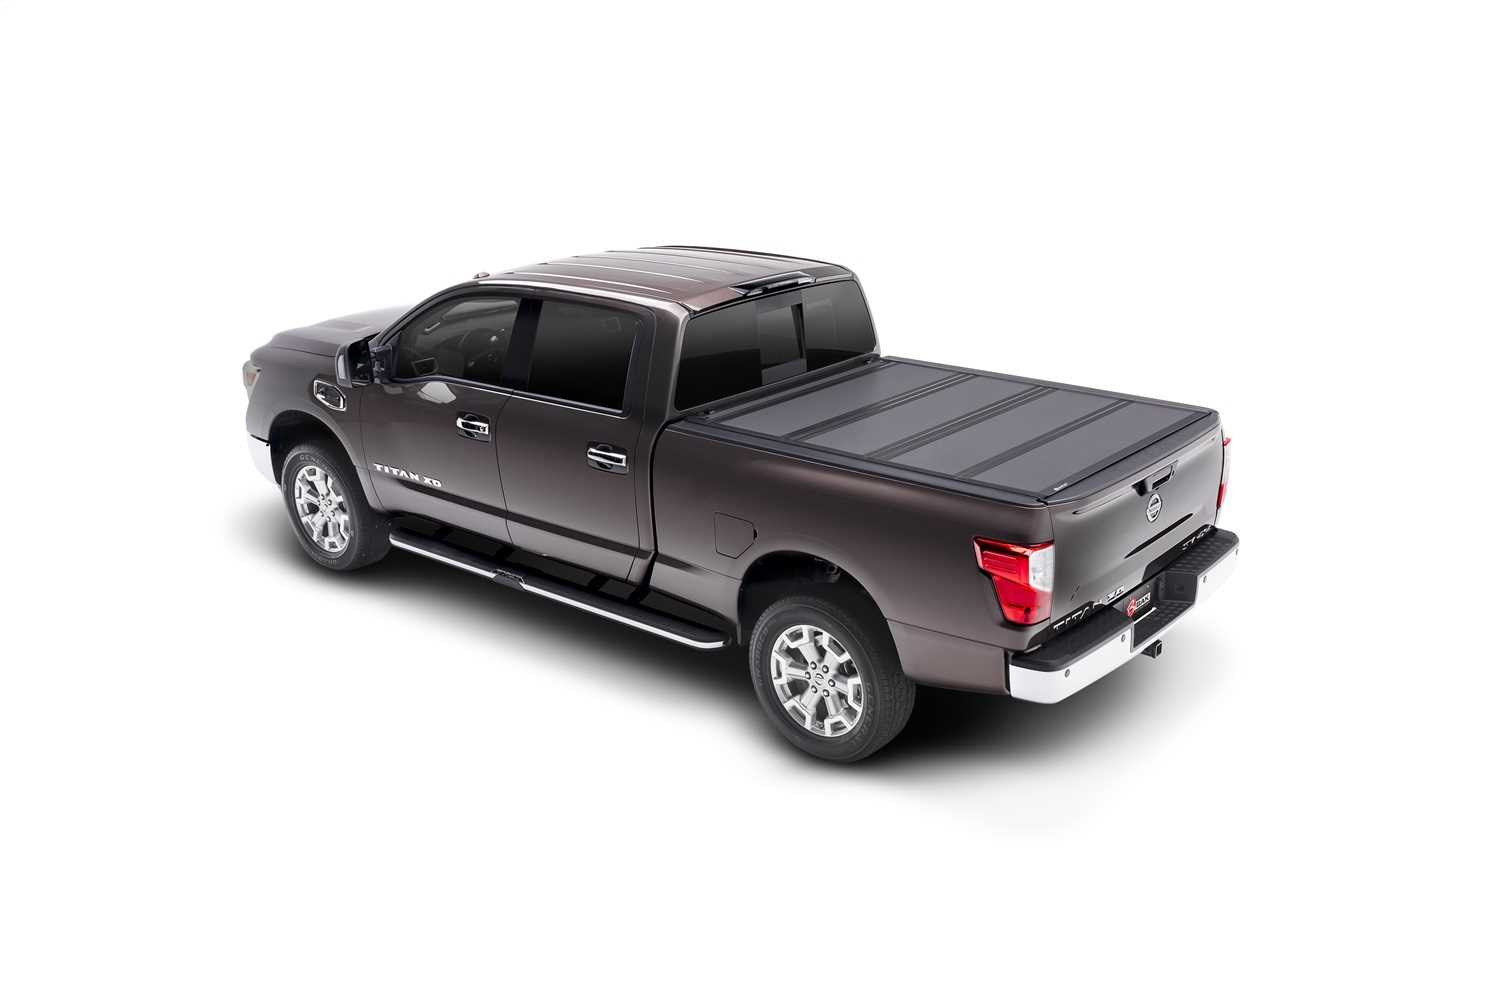 Bak Industries BAKFlip MX4 Hard Folding Truck Bed Cover 448507